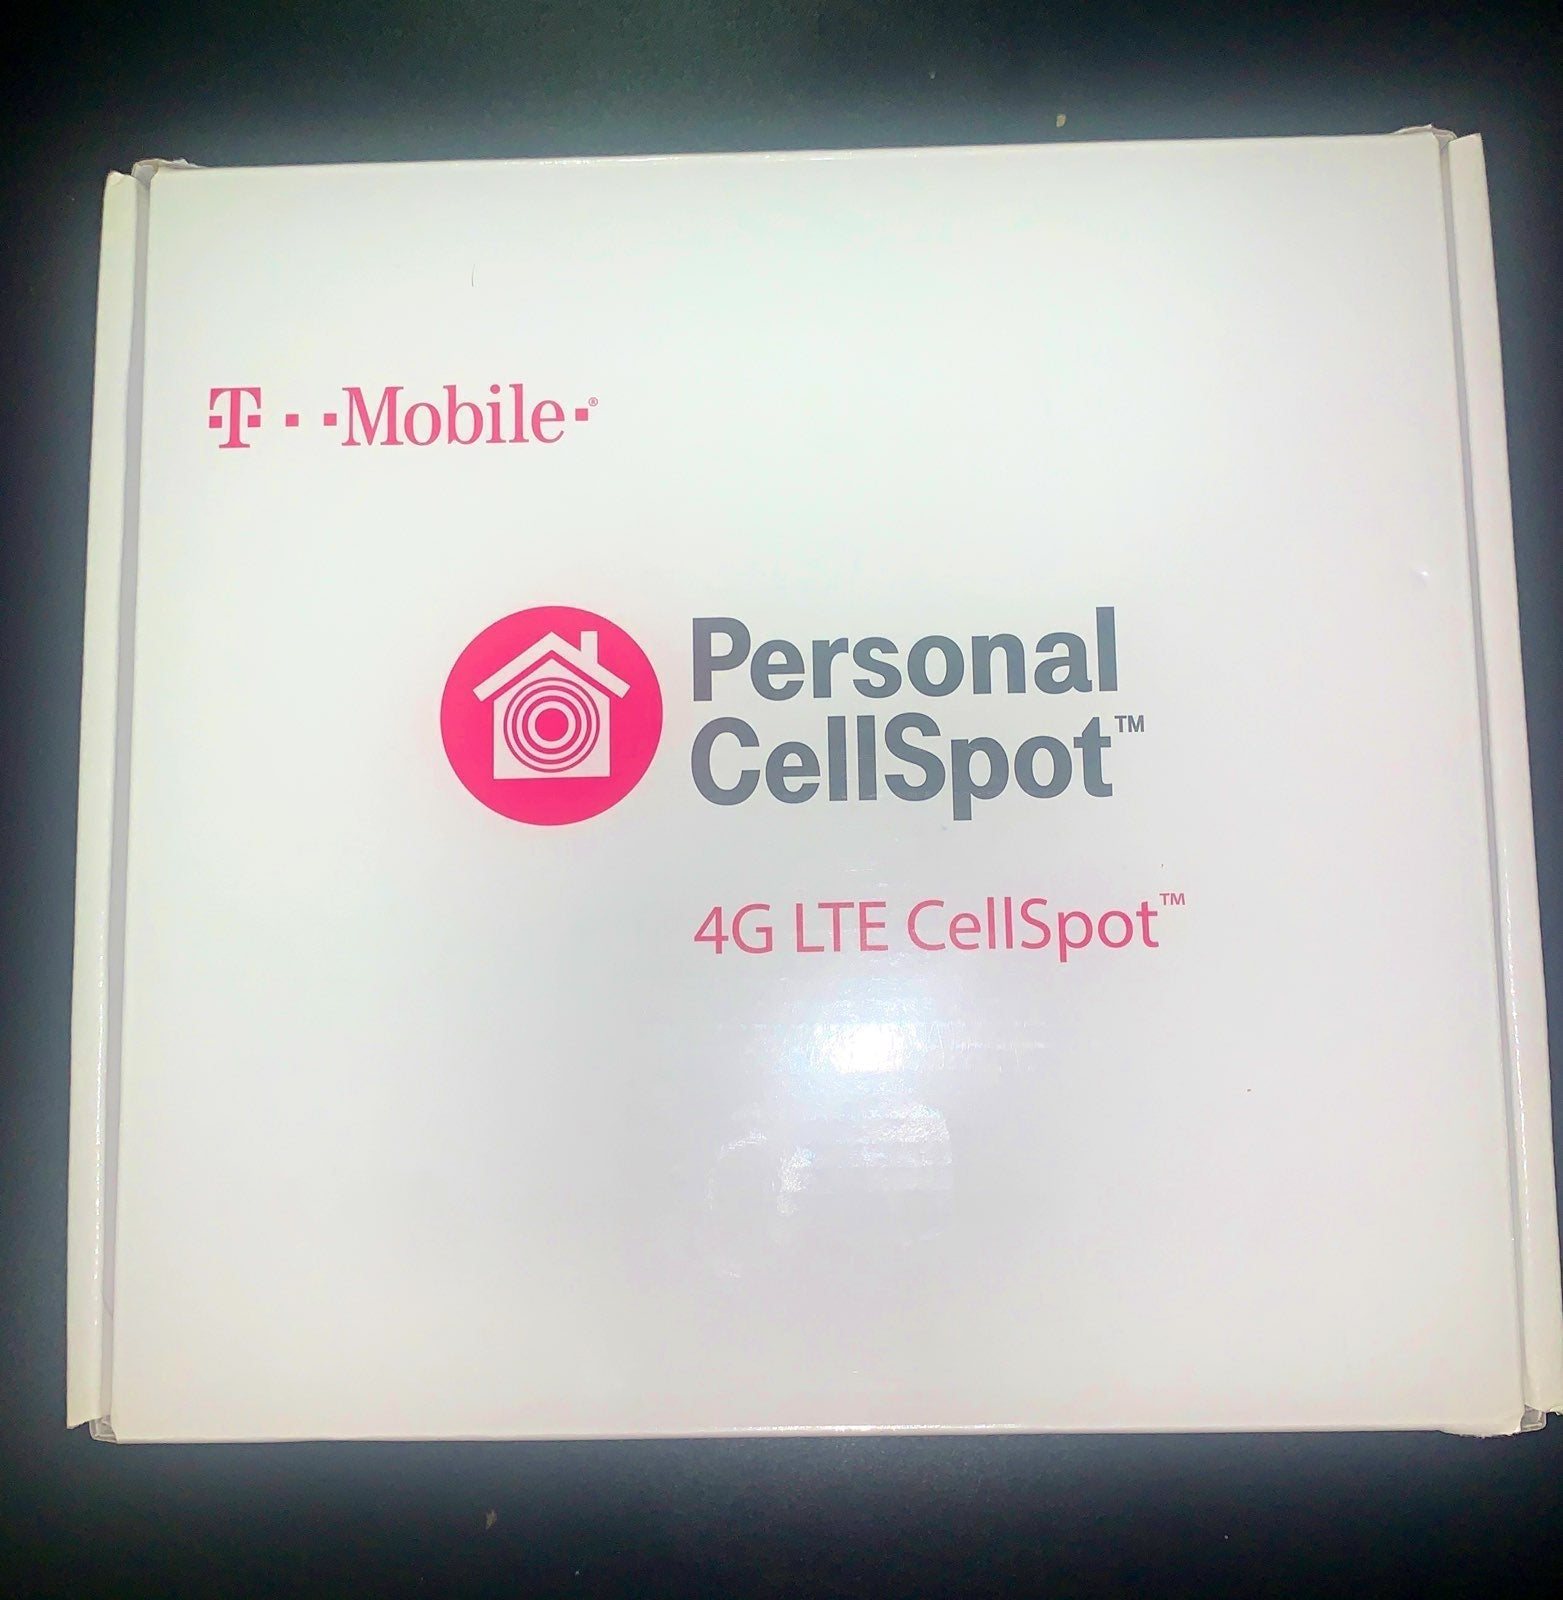 T-Mobile 4G LTE Personal Cellspot